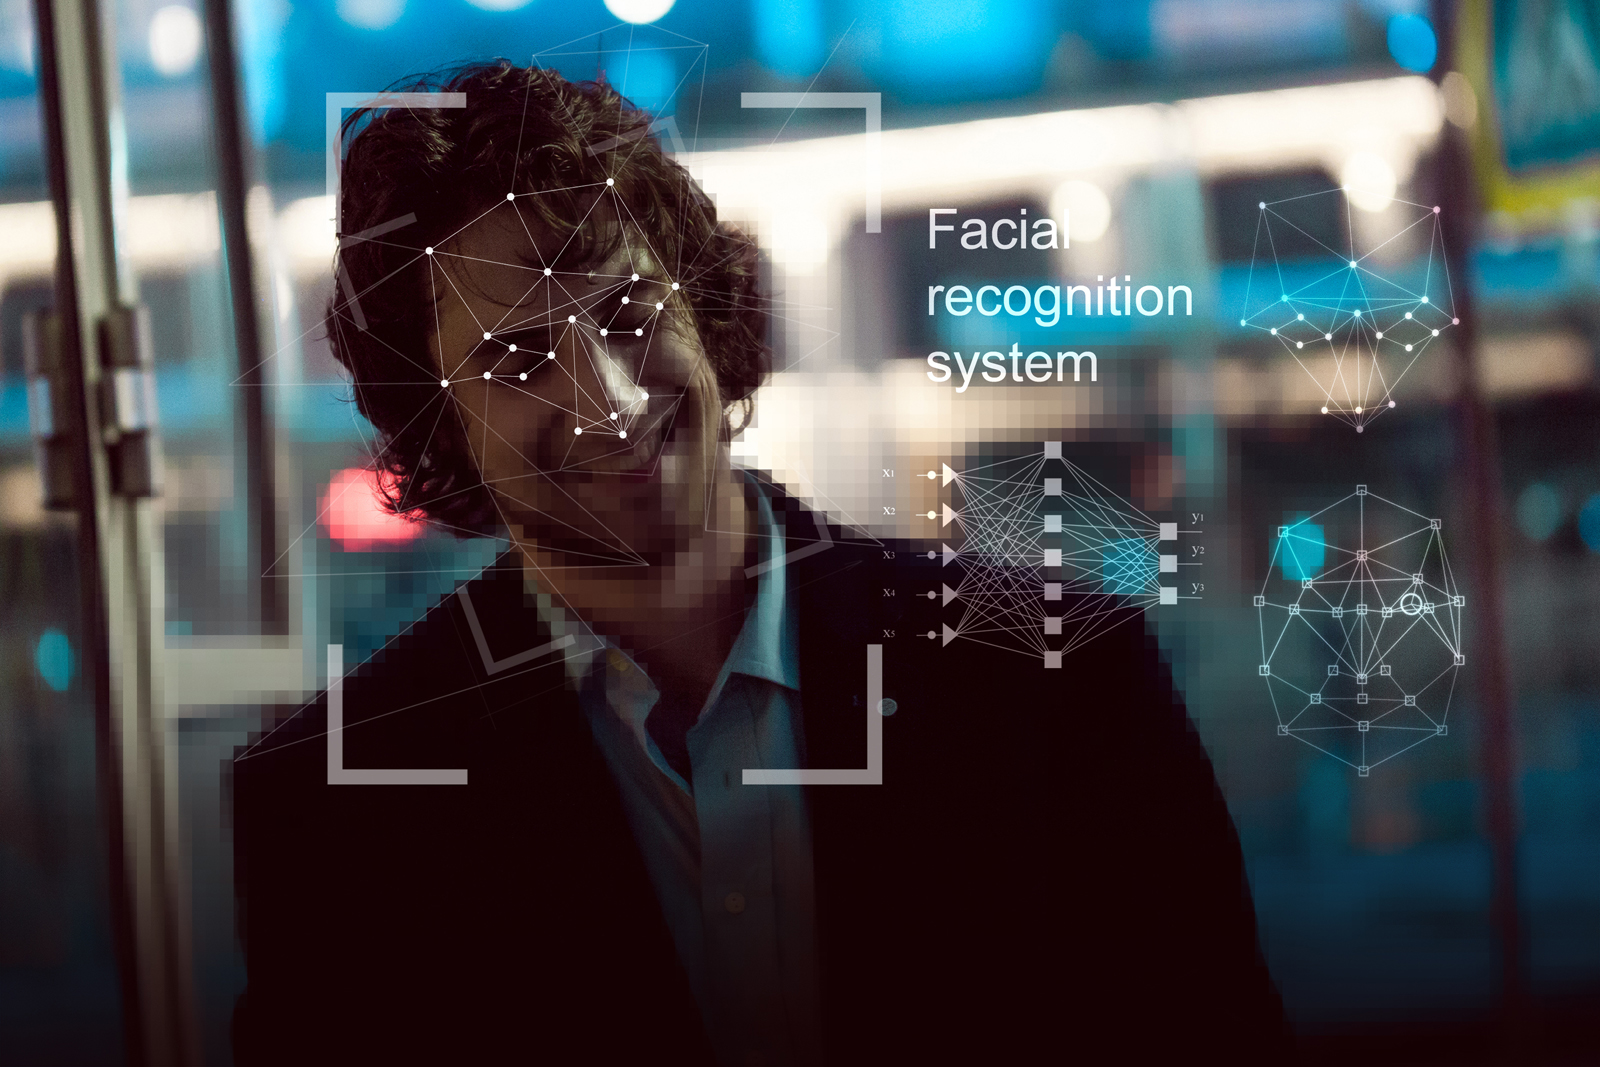 Facial recognition system, concept. Young man on the street, face recognition